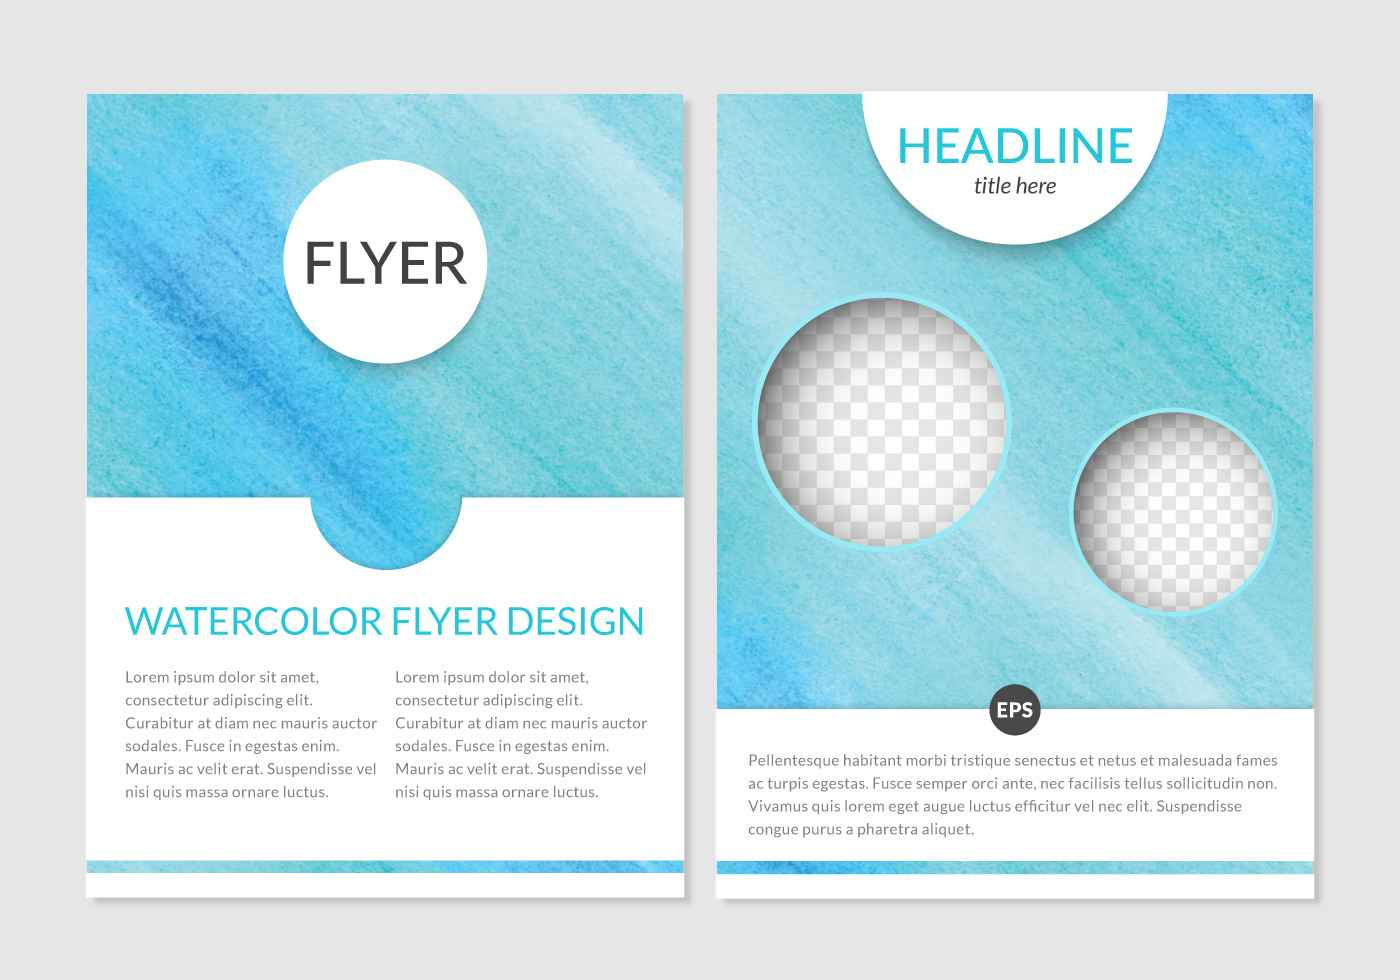 Watercolor Flyer Design Vector